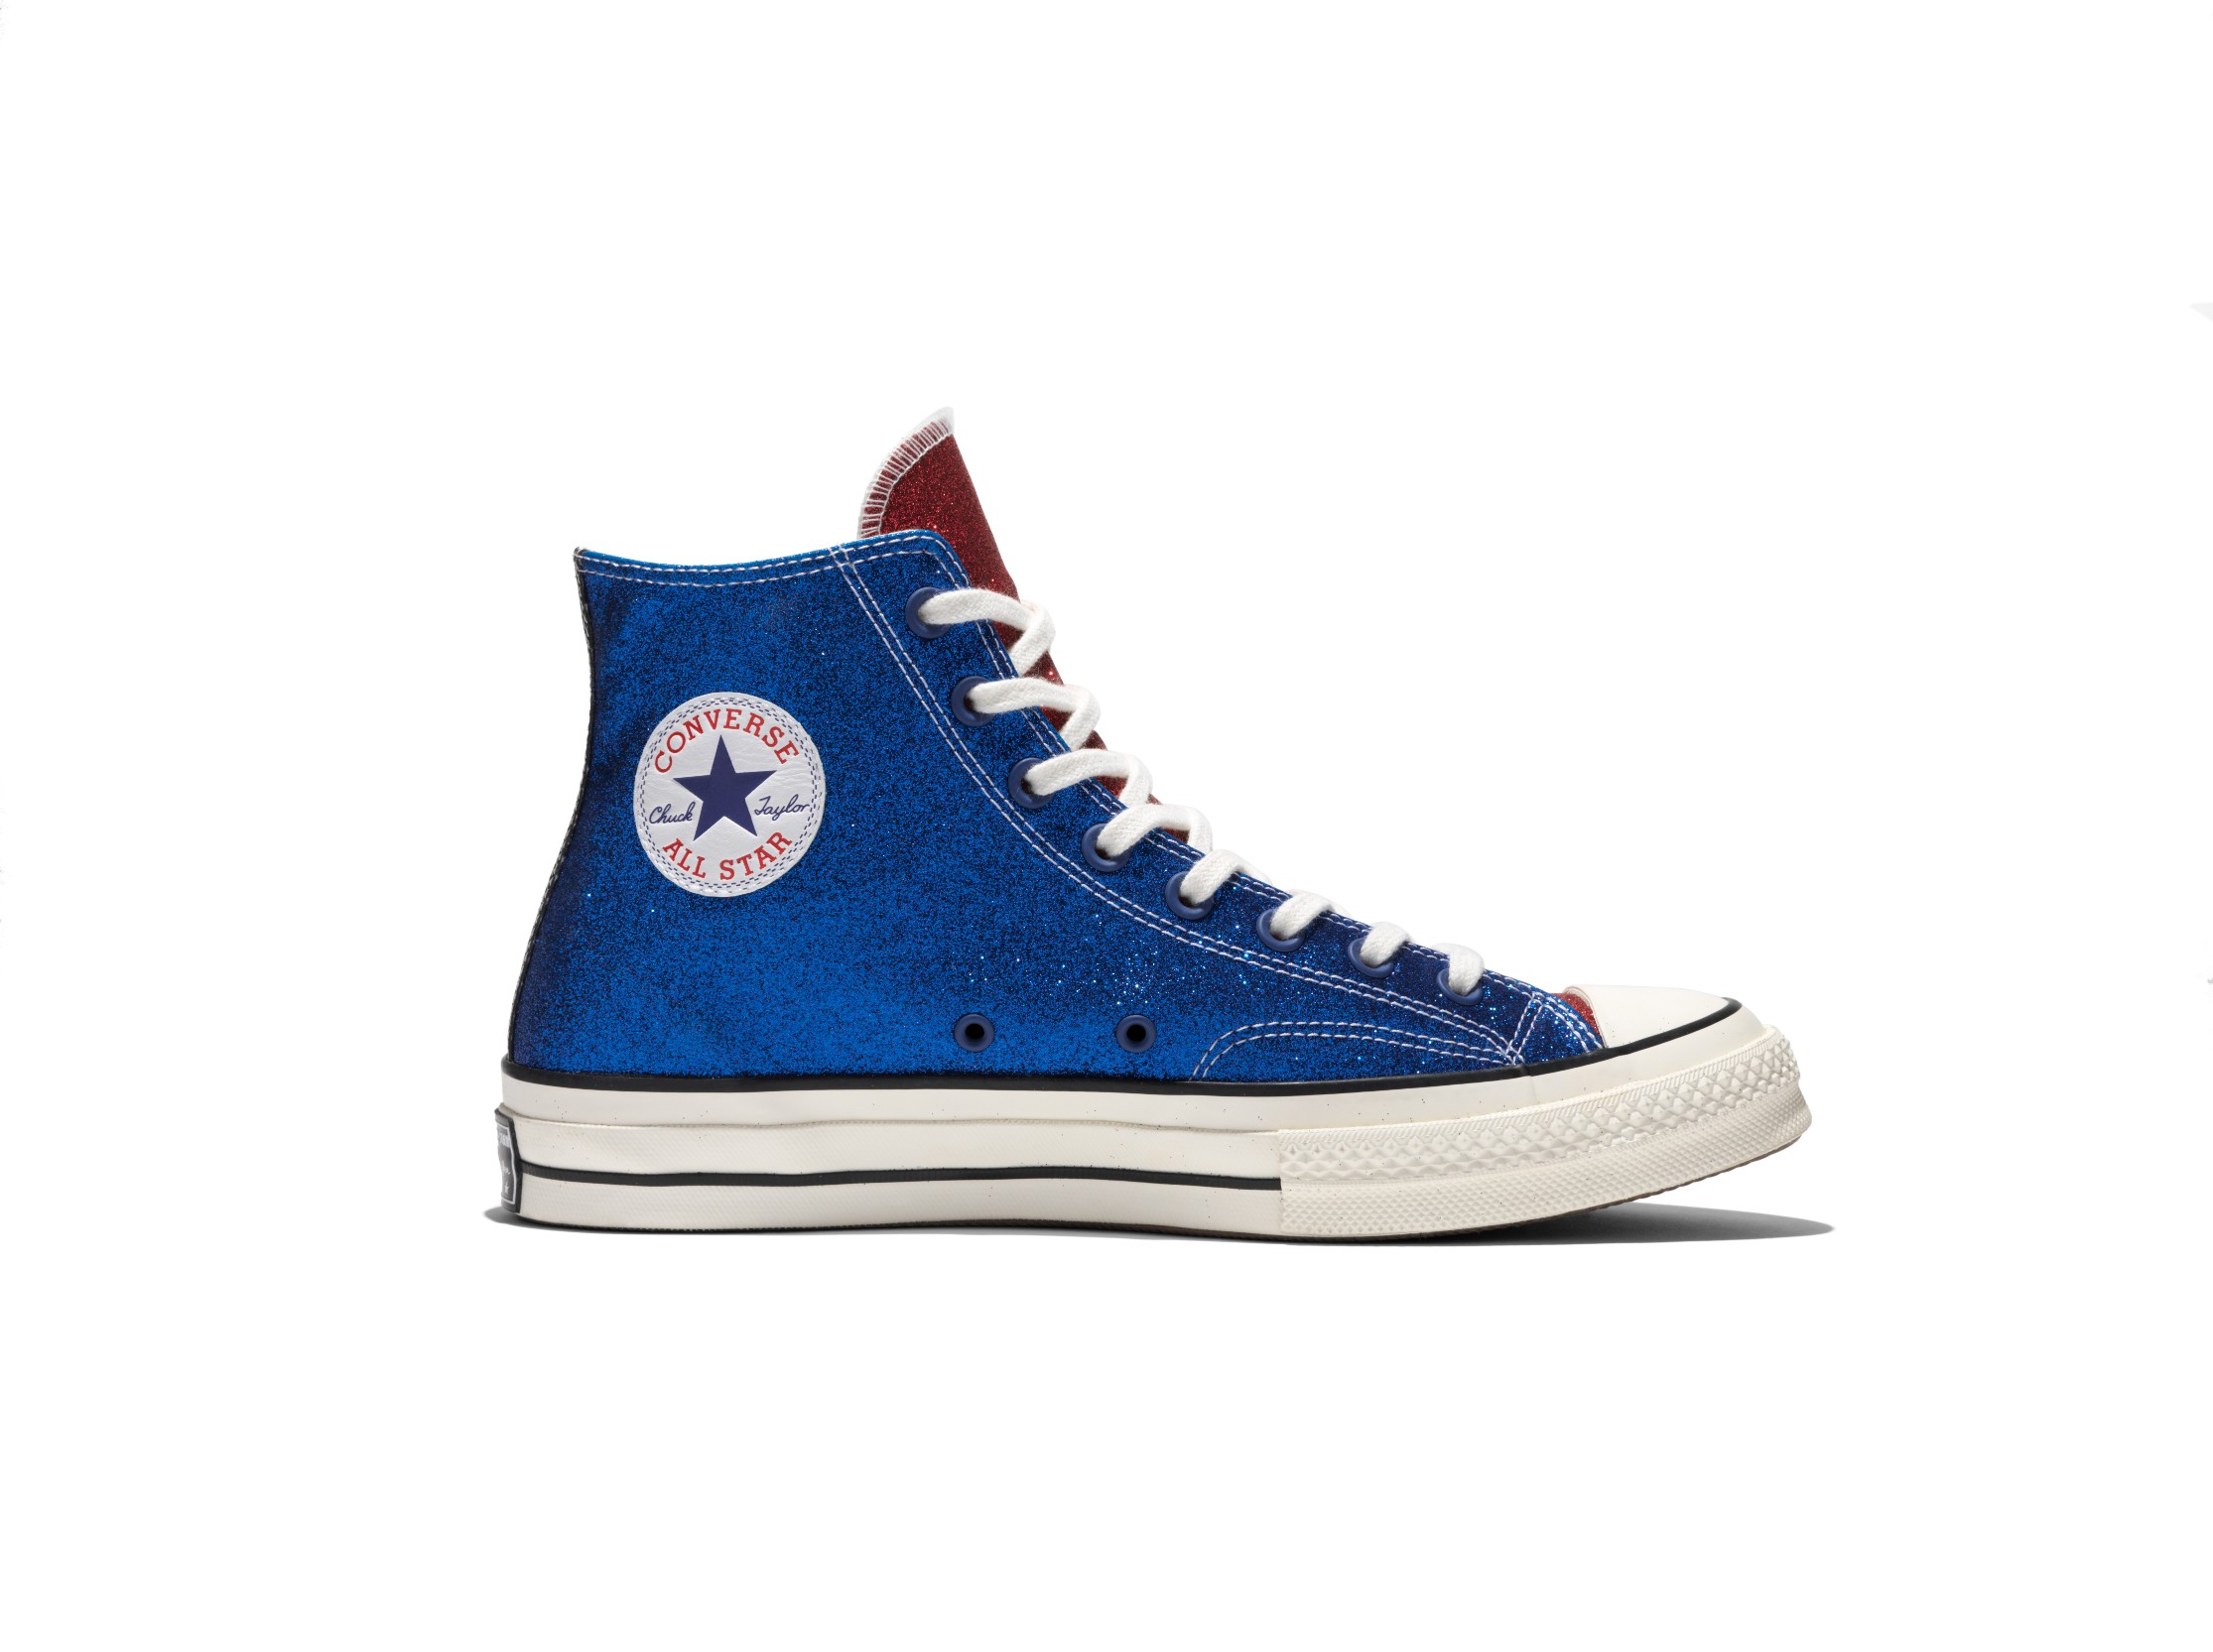 Converse Collab With JW Anderson To